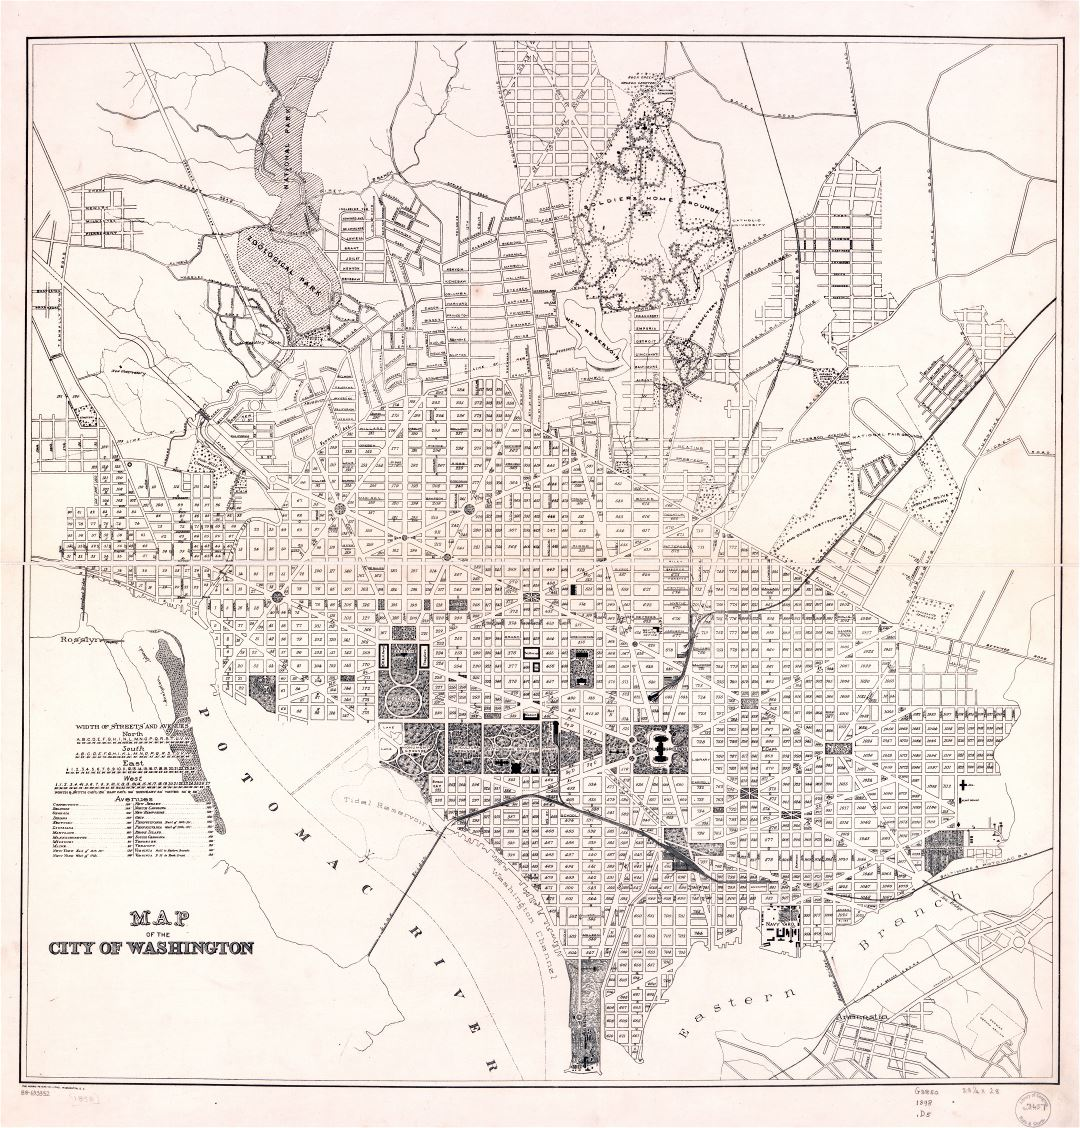 Large scale detailed old map of the city of Washington DC 1898